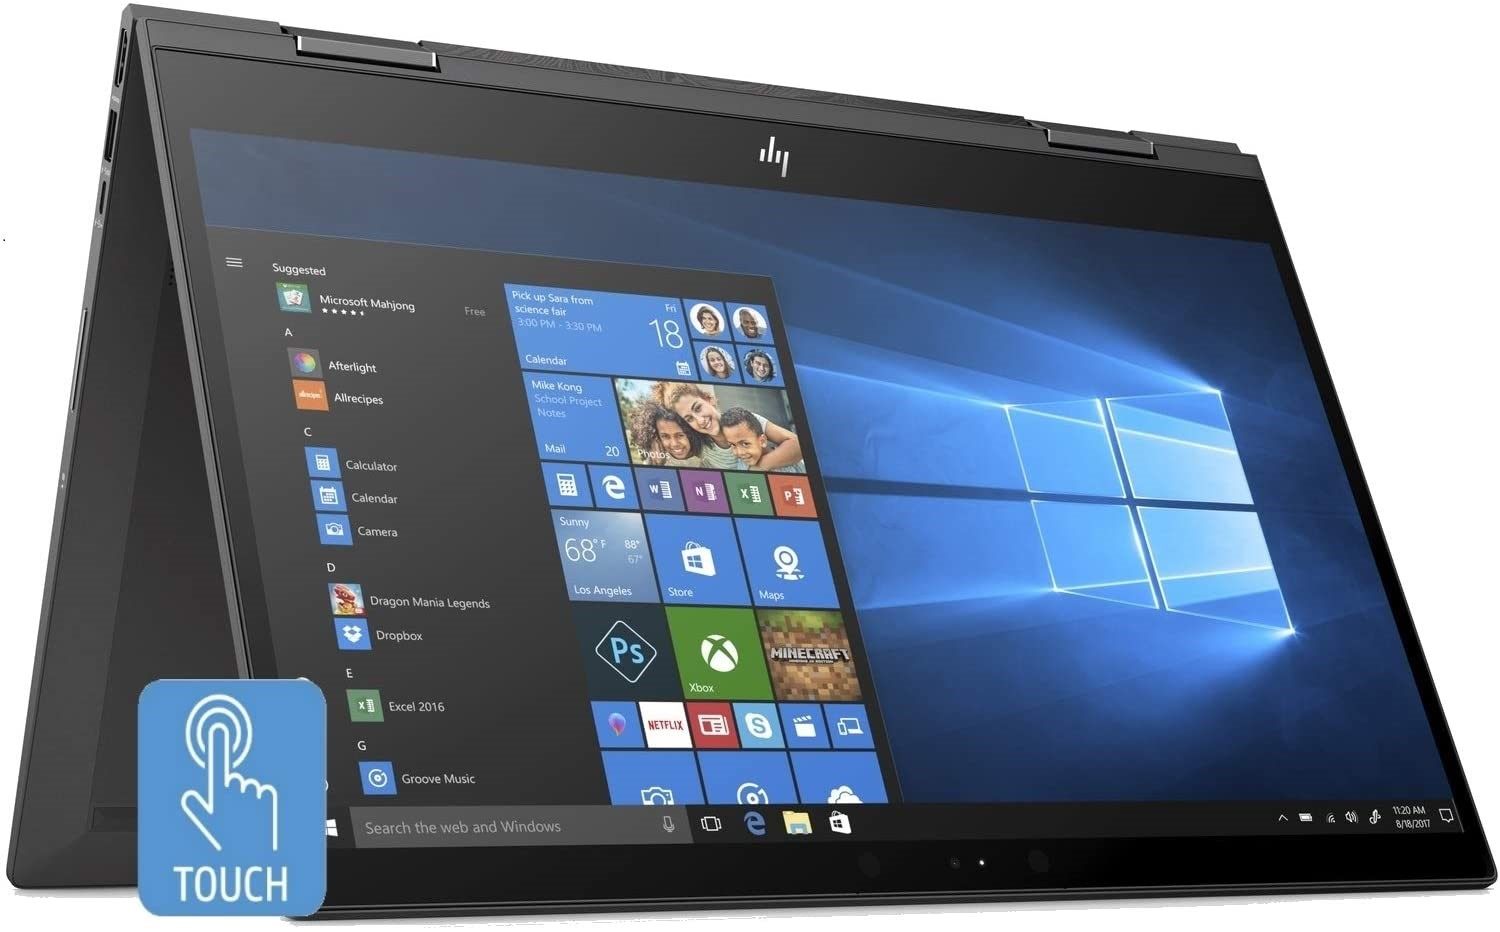 HP Envy x360 Touchscreen Laptop